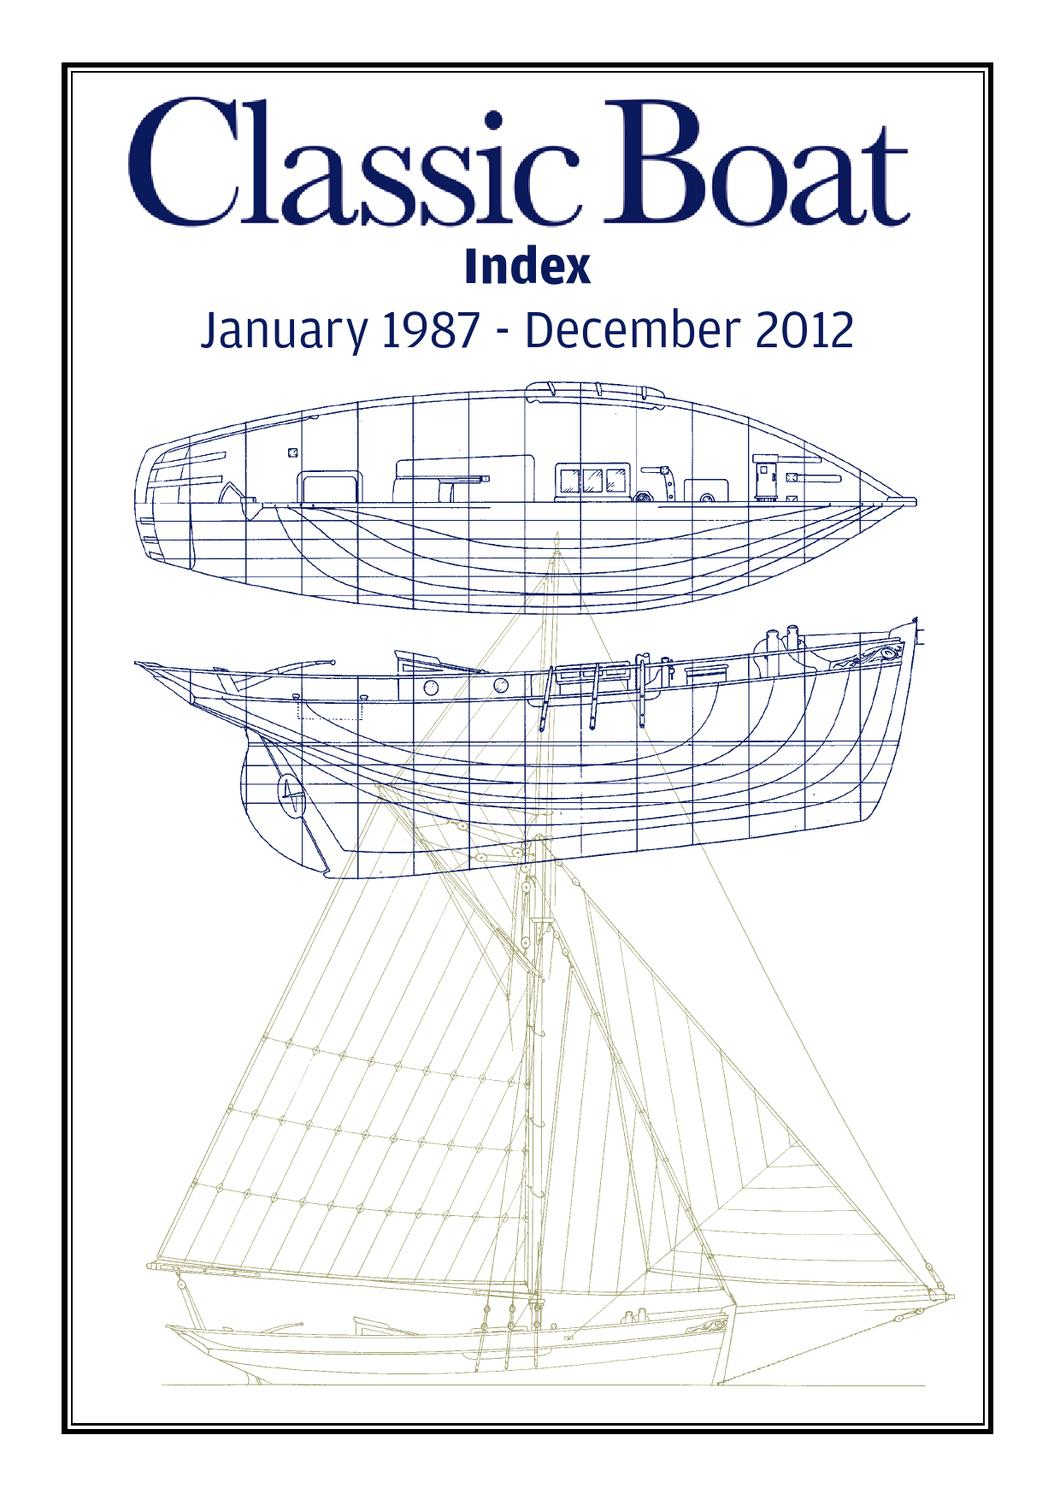 Classic Boat Index 1987 - 2012 by The Chelsea Magazine Company - issuu